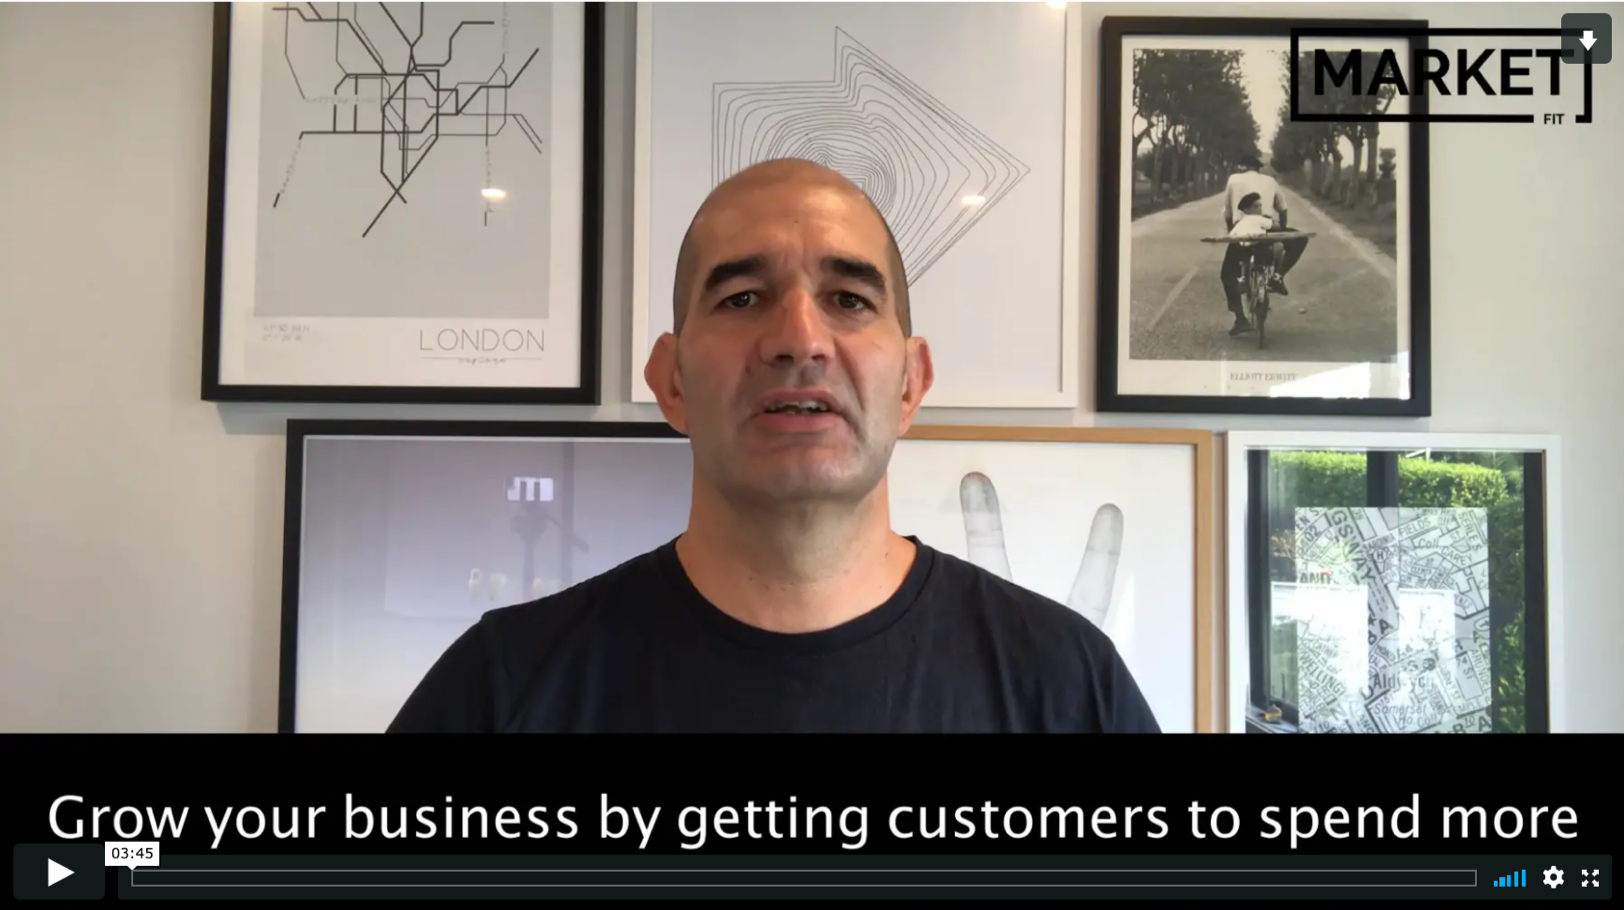 Grow your business by getting customers to spend more